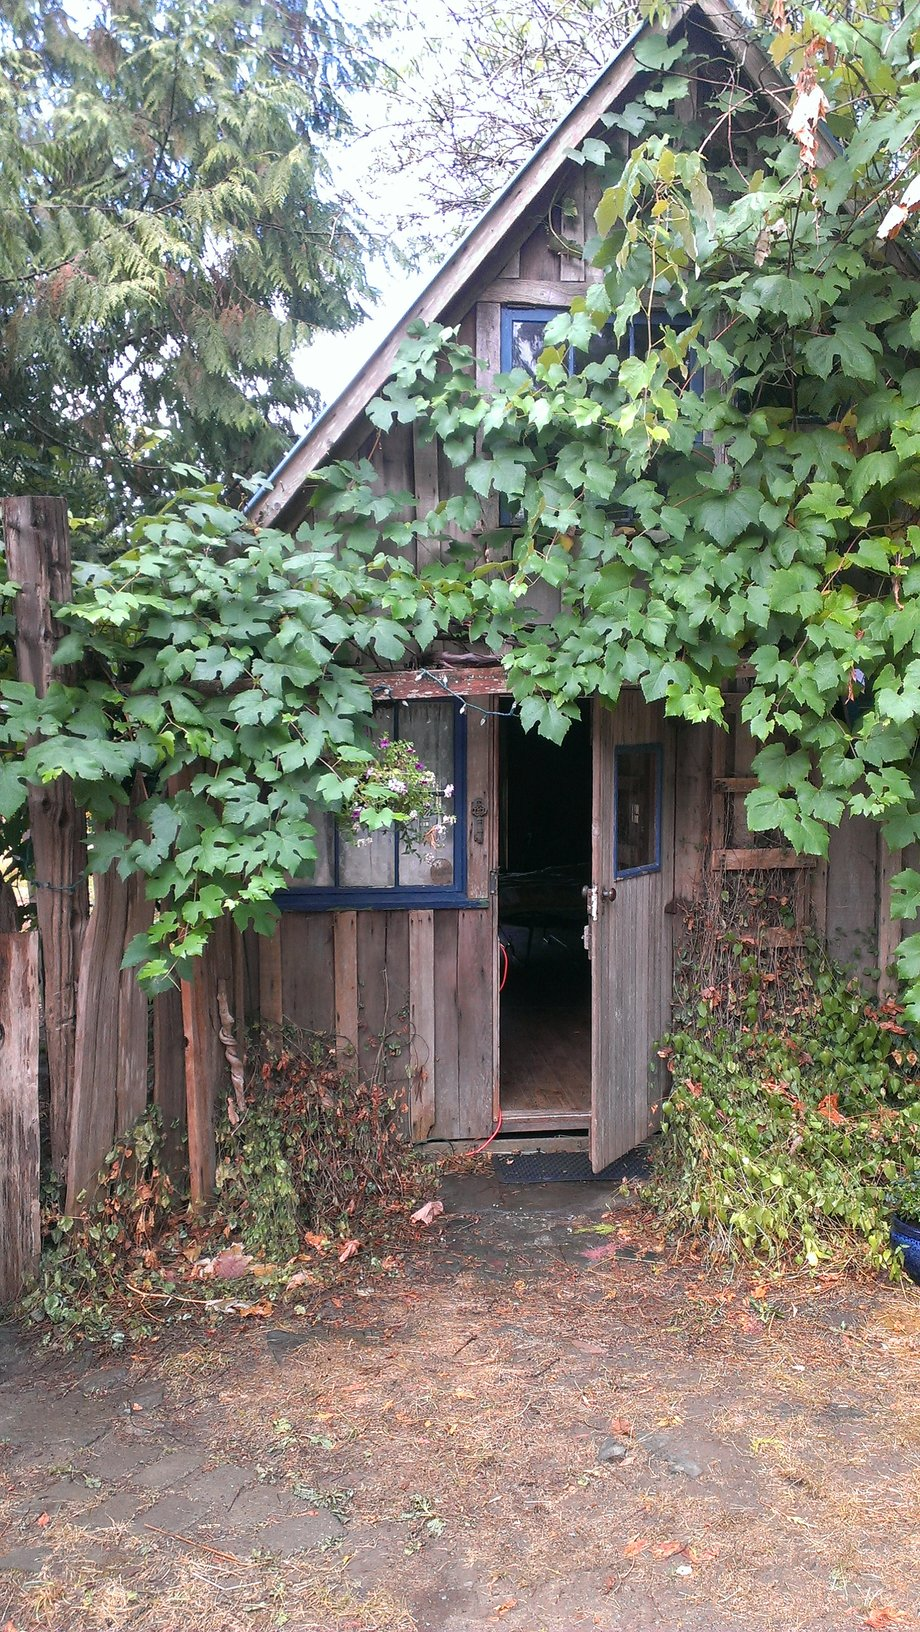 rsz_the_old_cabin